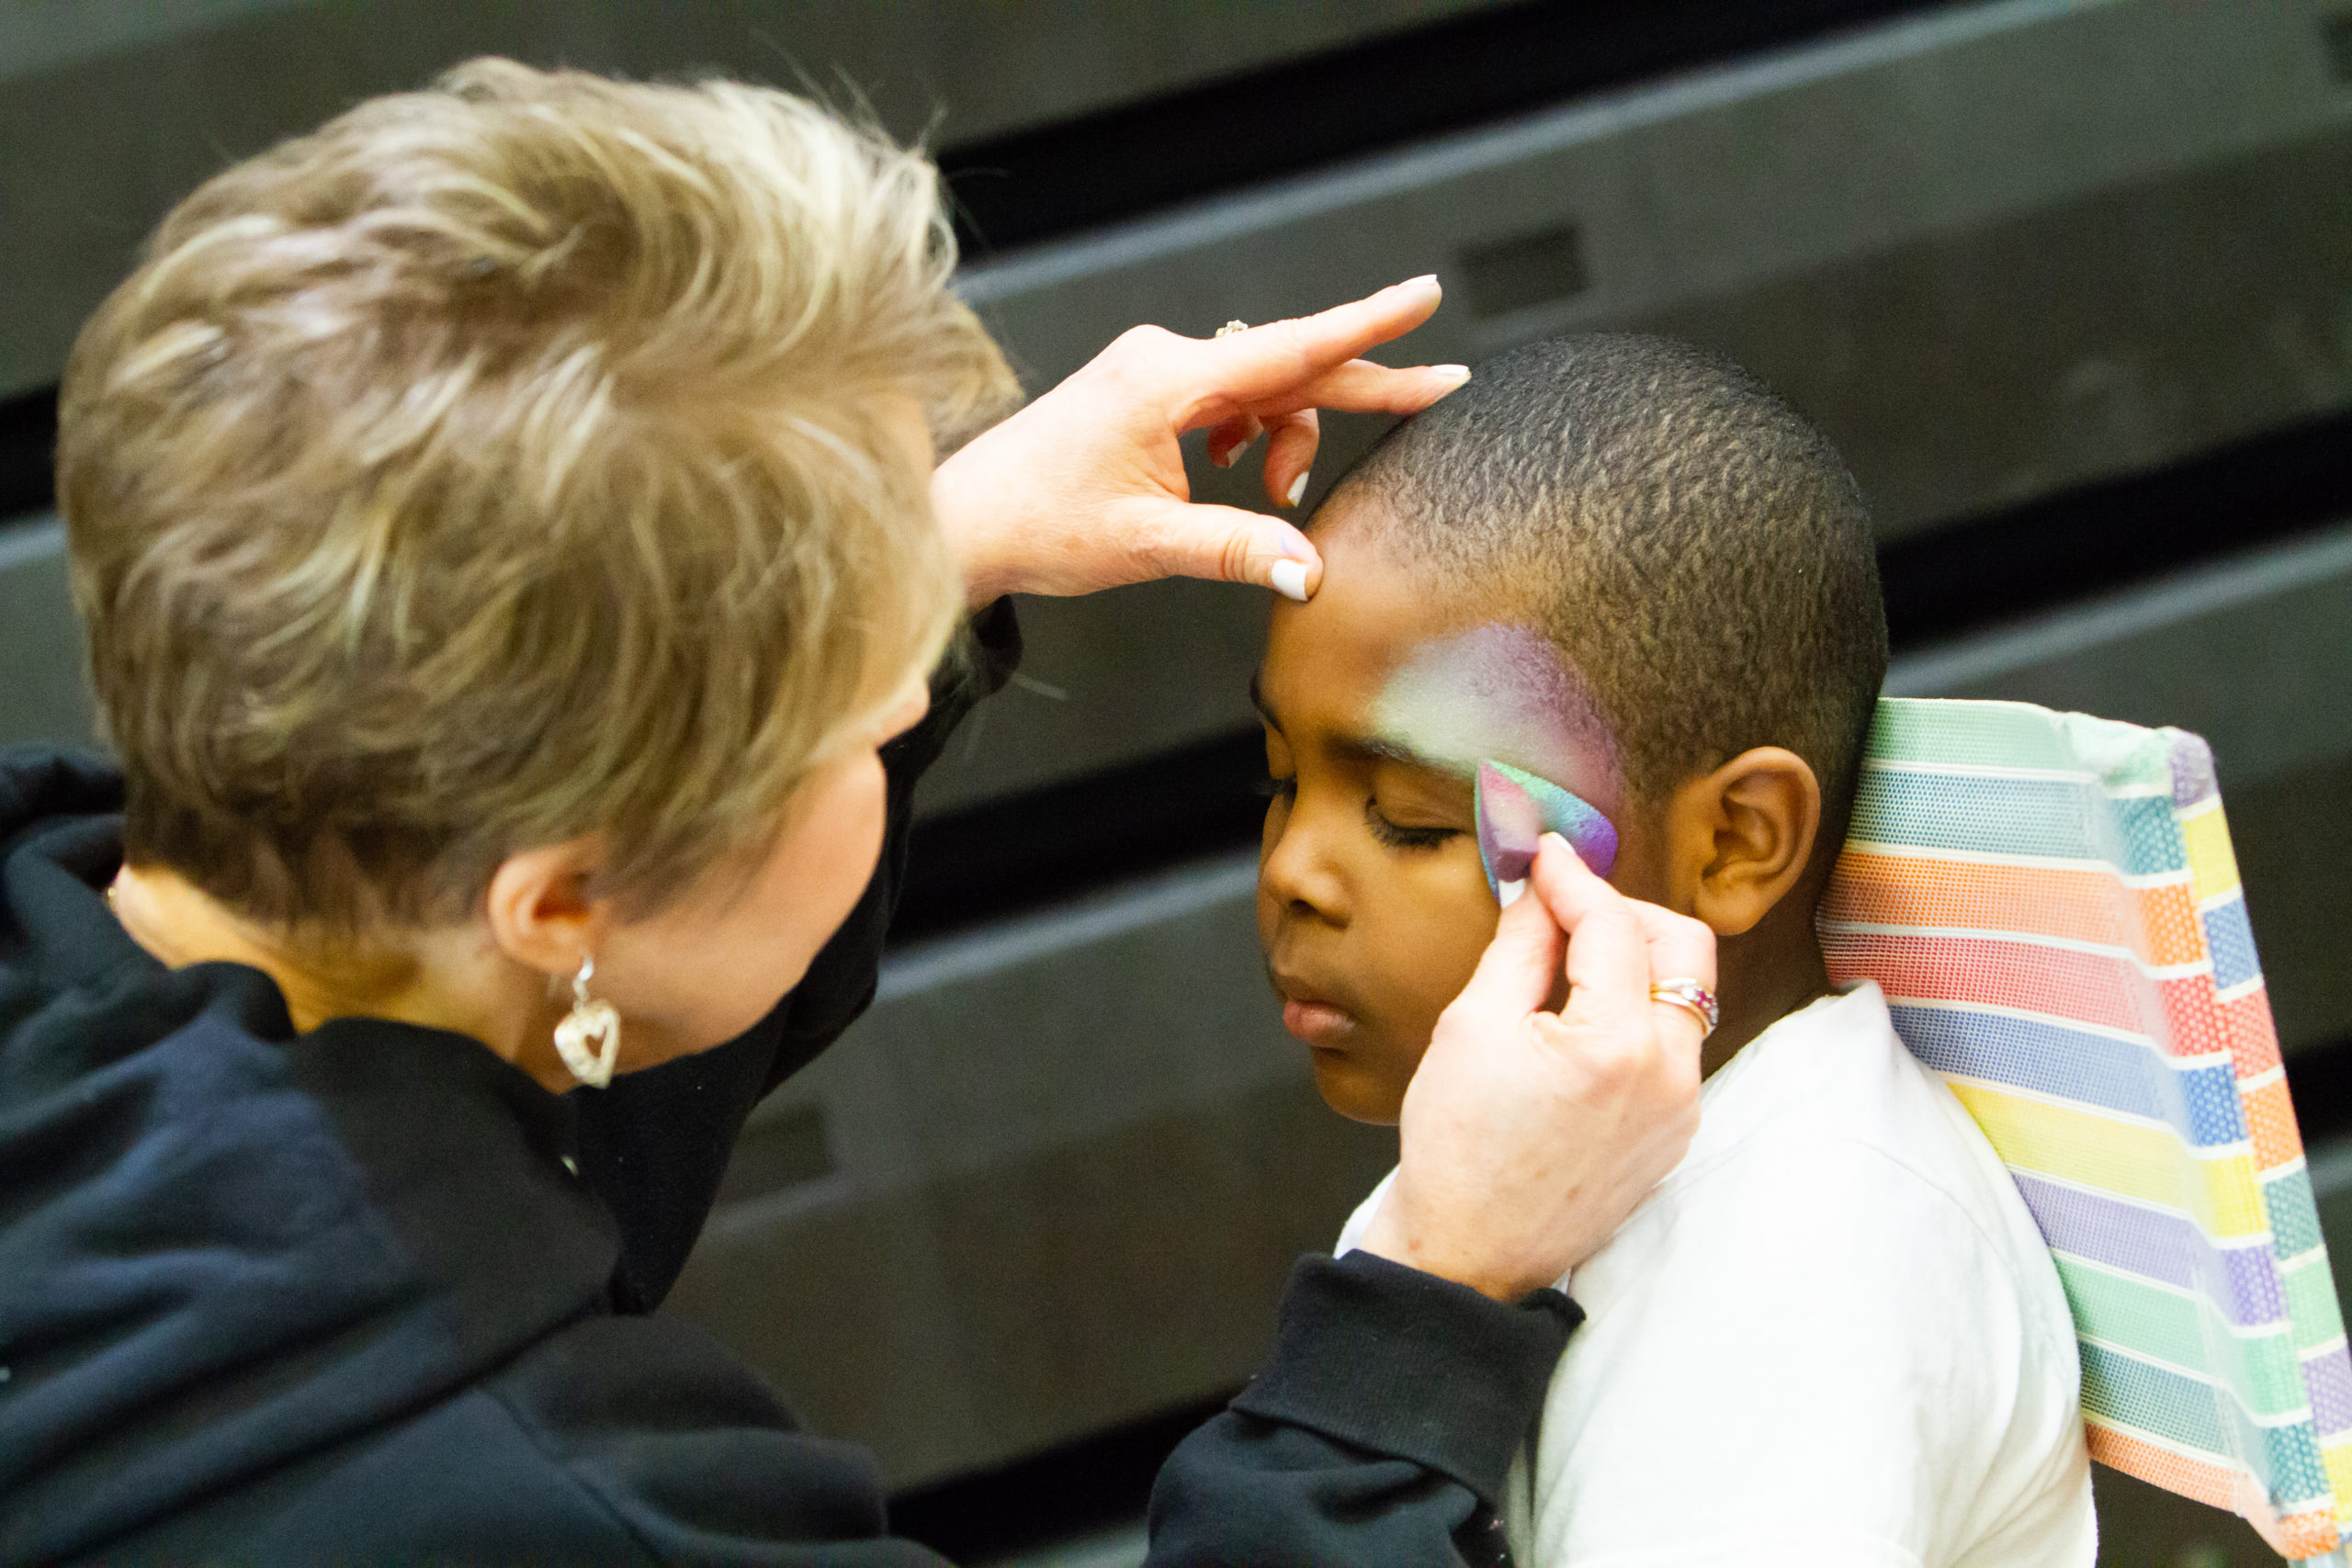 Child getting face painted at Camp Expo 2019.